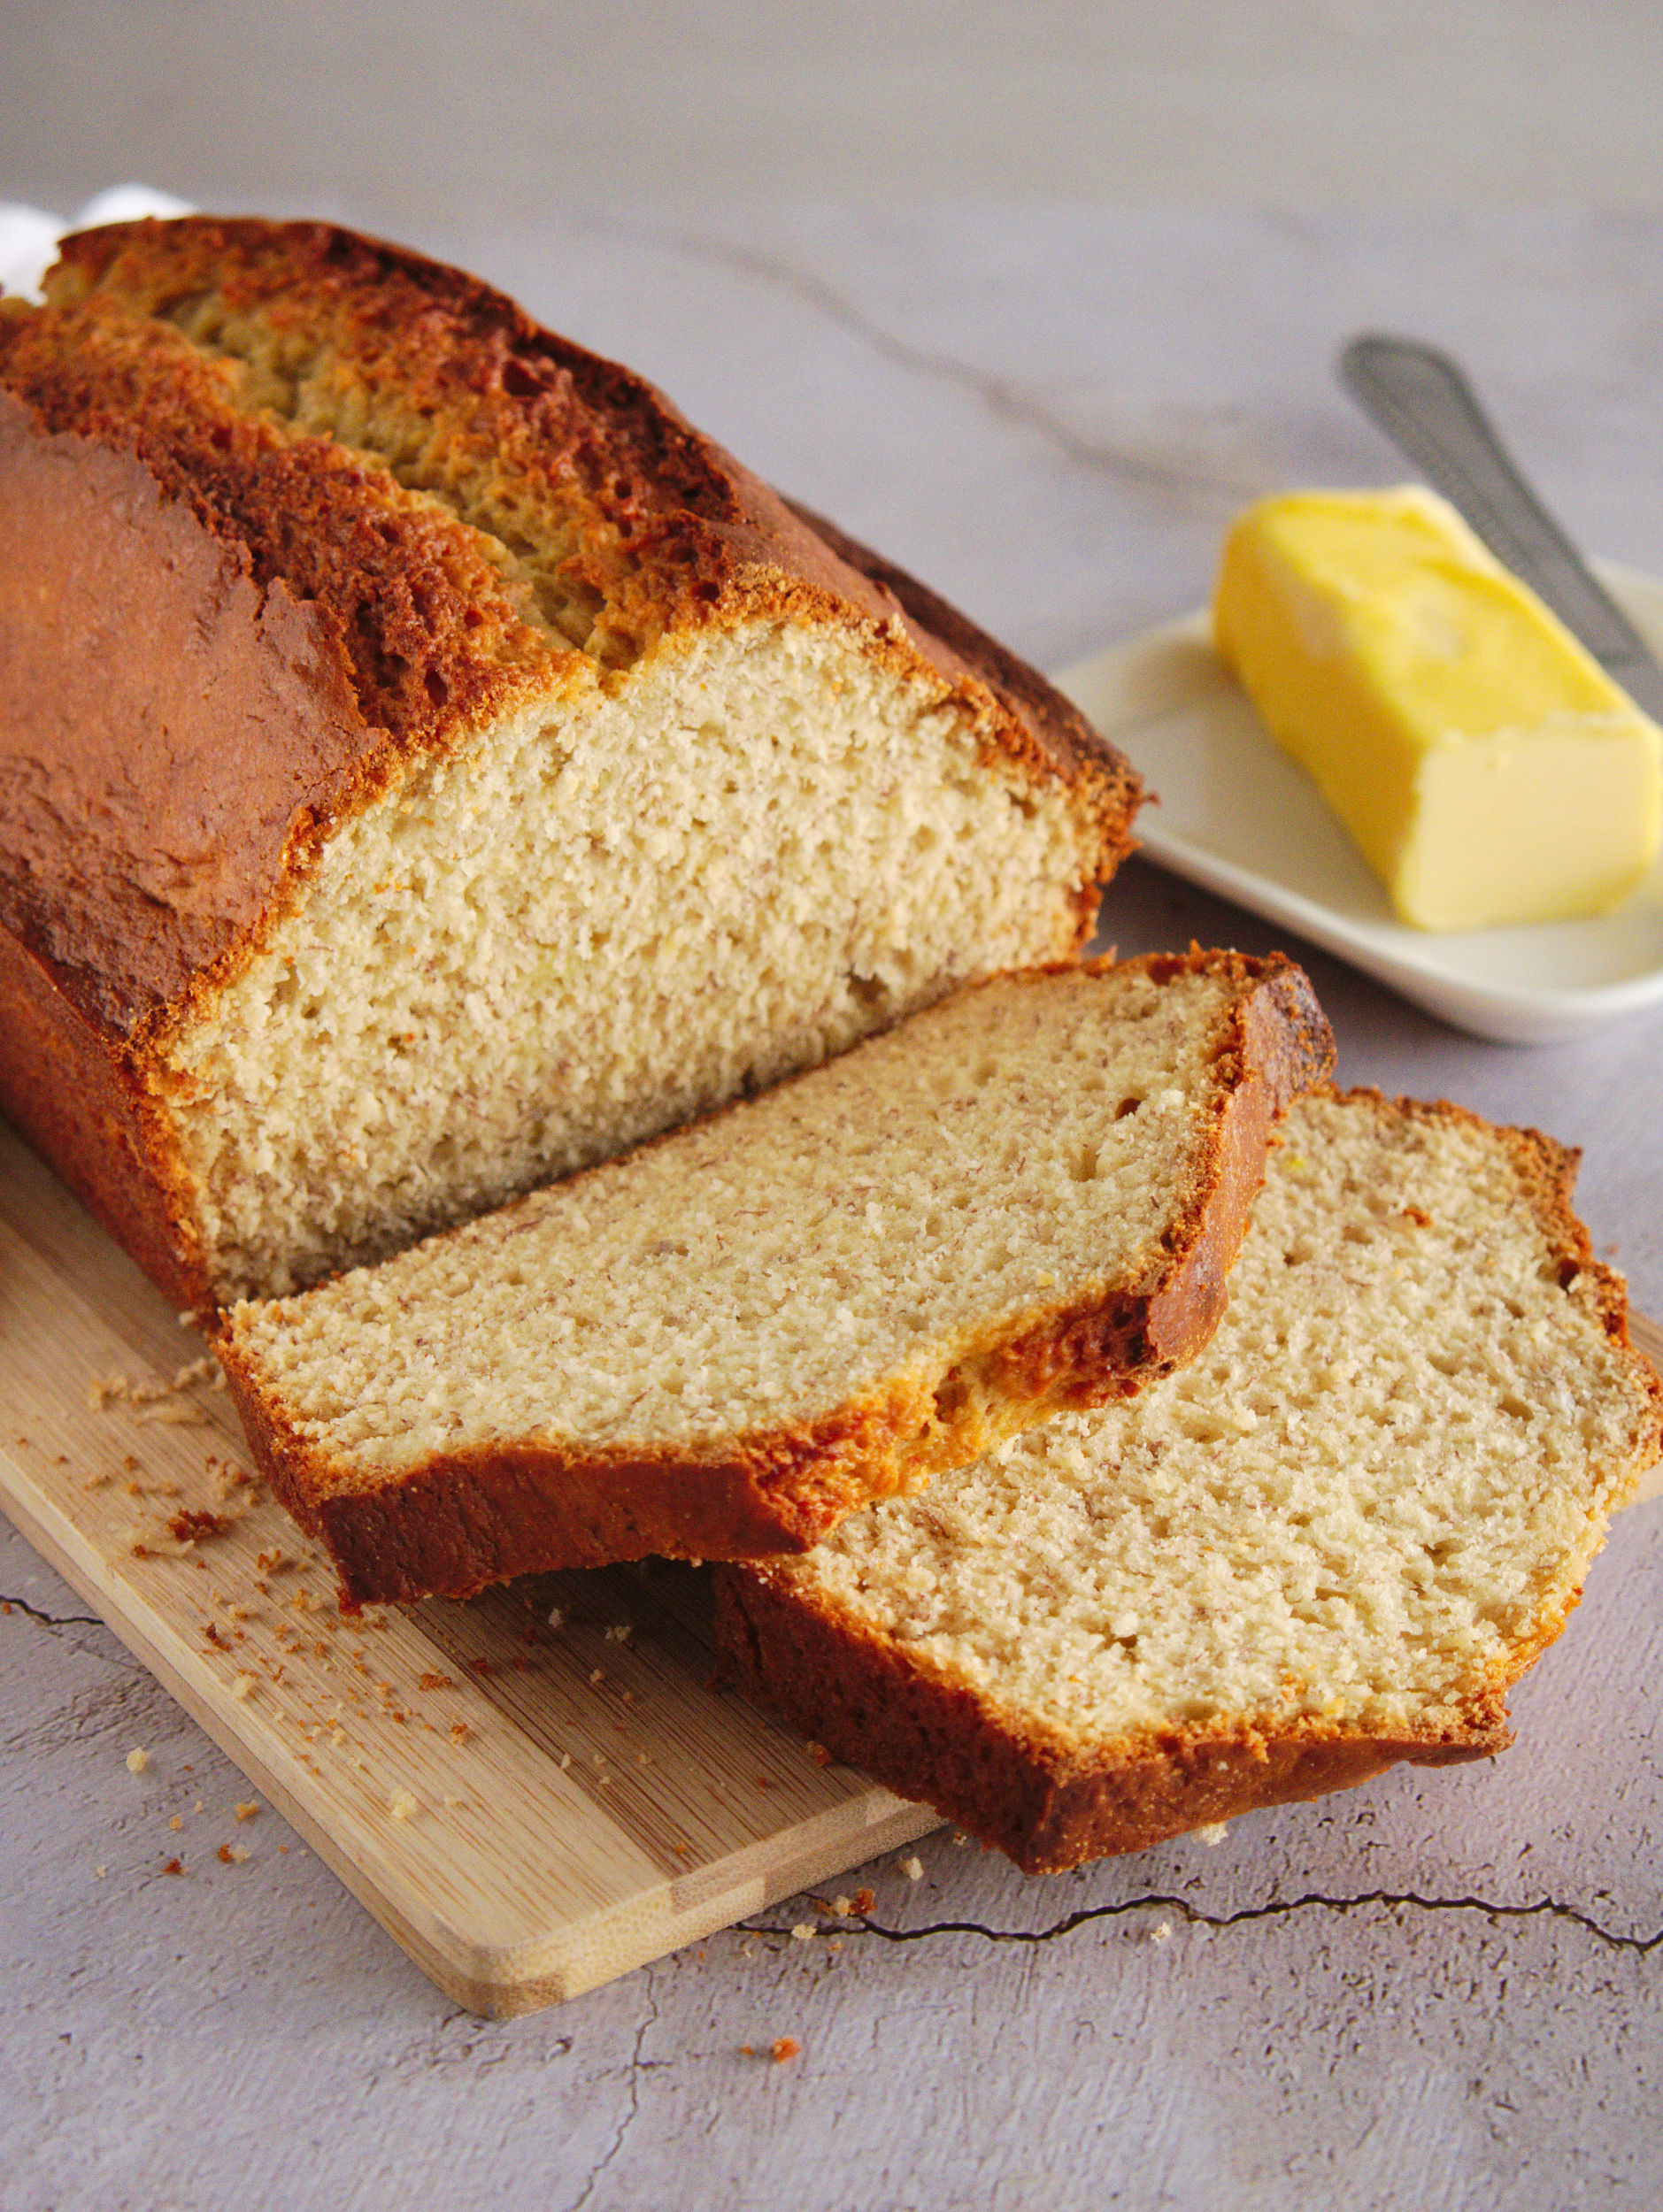 a loaf of banana bread with a few slices sliced off and a stick of butter beside it